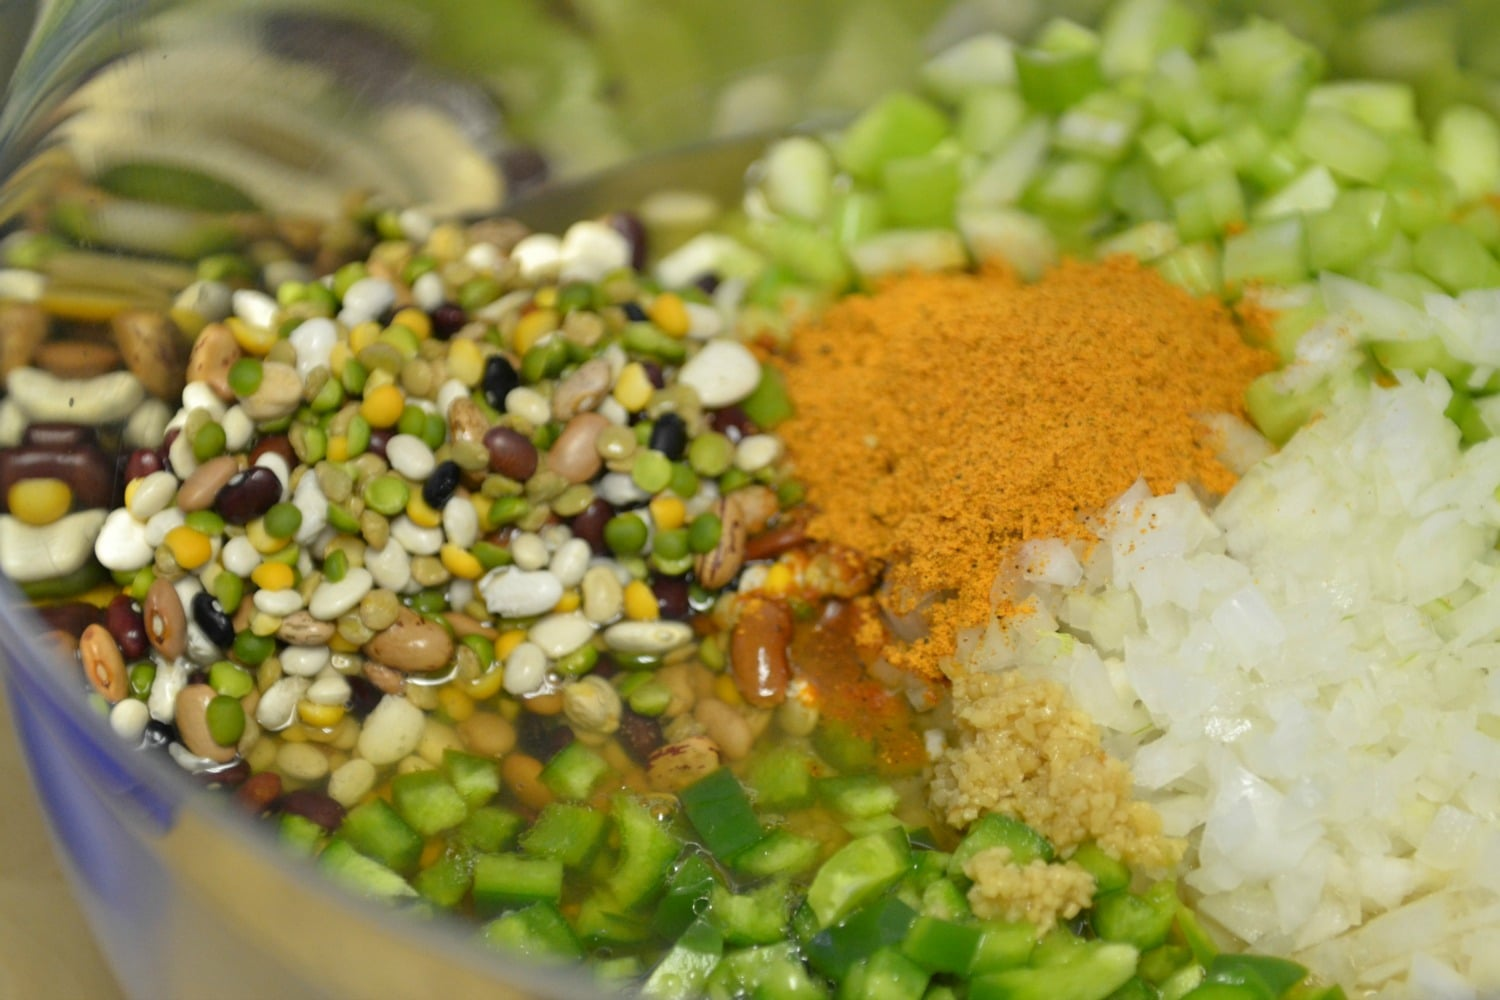 Combine the beans, peppers, onion, celery and seasonings in a bowl.